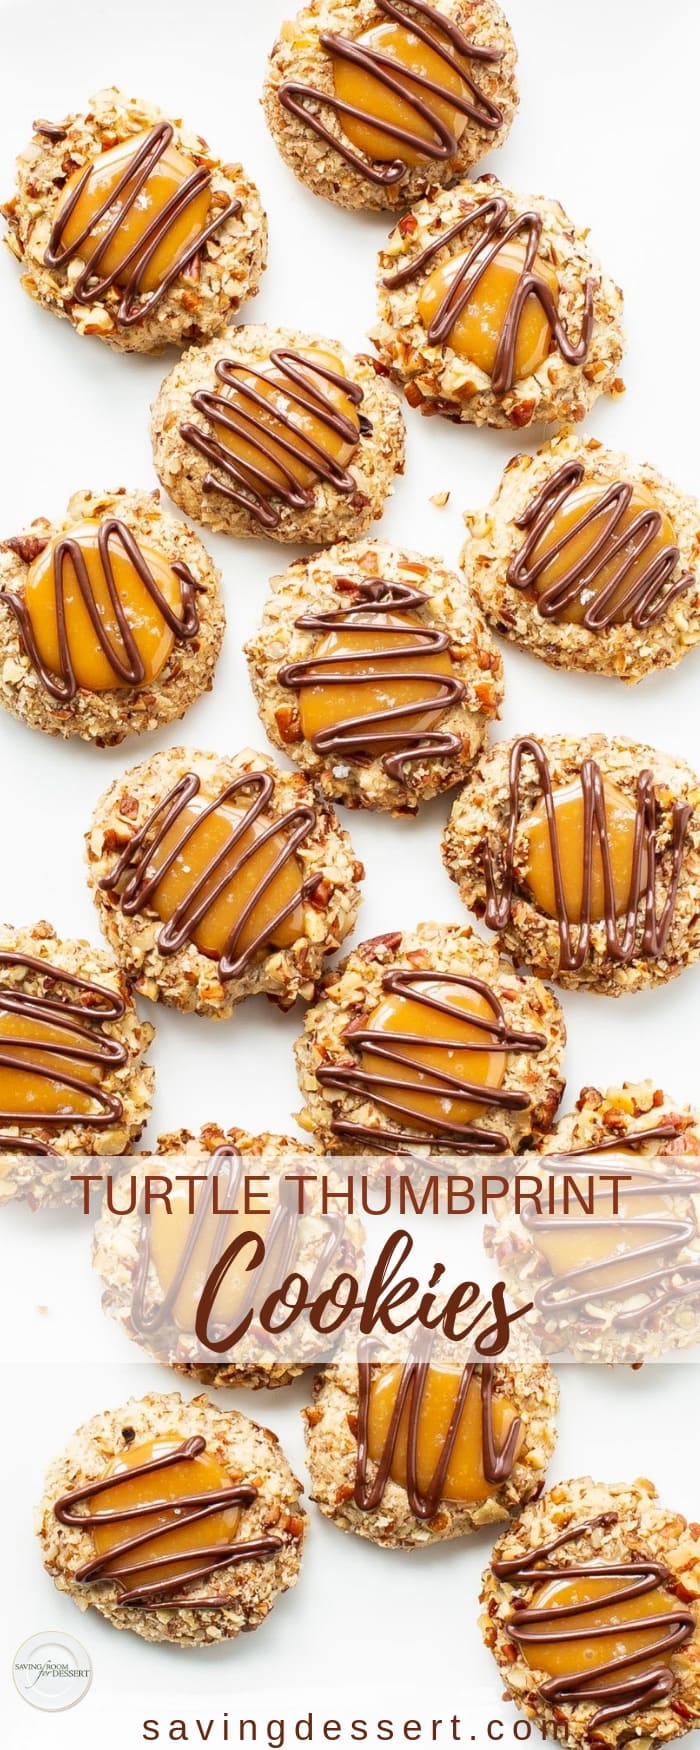 Turtle Thumbprint Cookies - deliciously nutty cookies with a smooth, creamy dollop of sweet caramel on top and a drizzle of yummy chocolate - cookie heaven! #savingroomfordessert #turtle #turtlecookies #thumbprints #thumbprintcookies #cookies #baking #turtlethumbprint